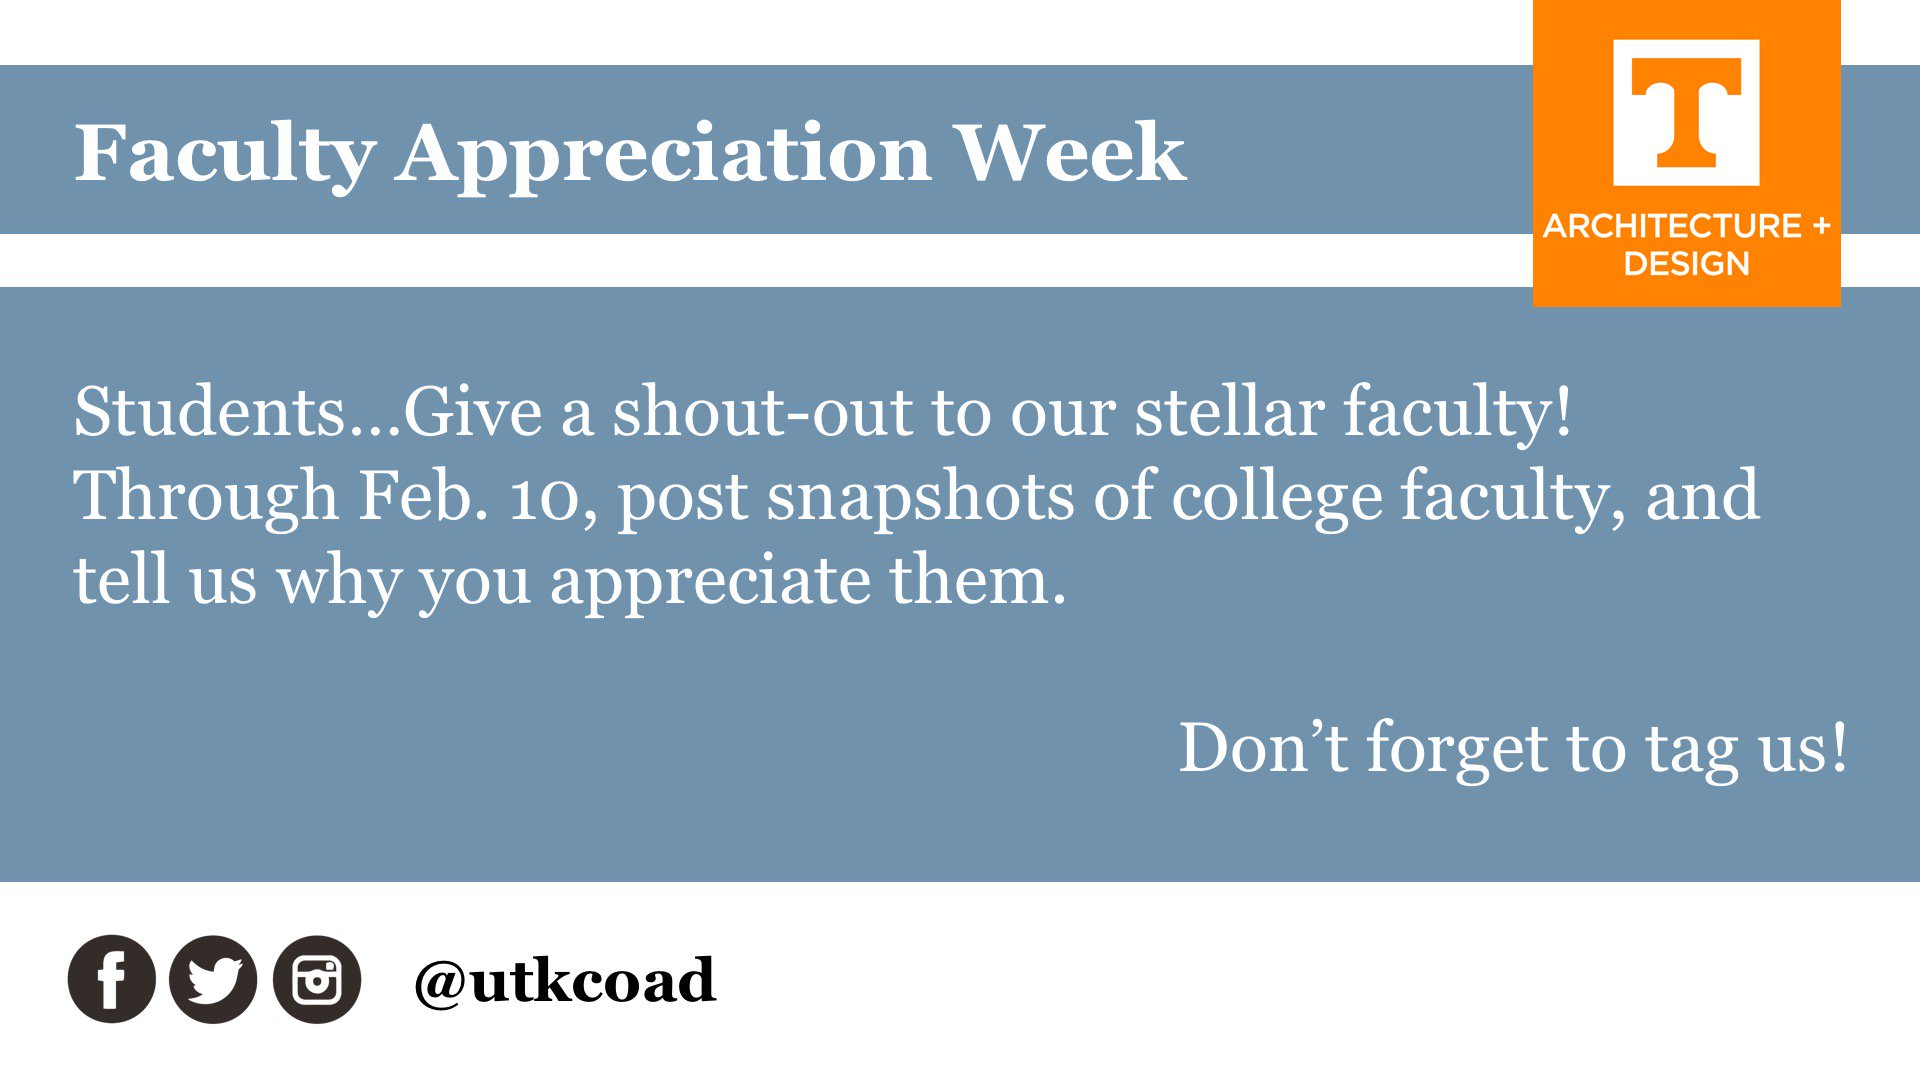 Students, tell (or show) us which faculty you are celebrating! Faculty Appreciation Week: One more reason to celebrate our stellar faculty! https://t.co/RfldMrwj6x